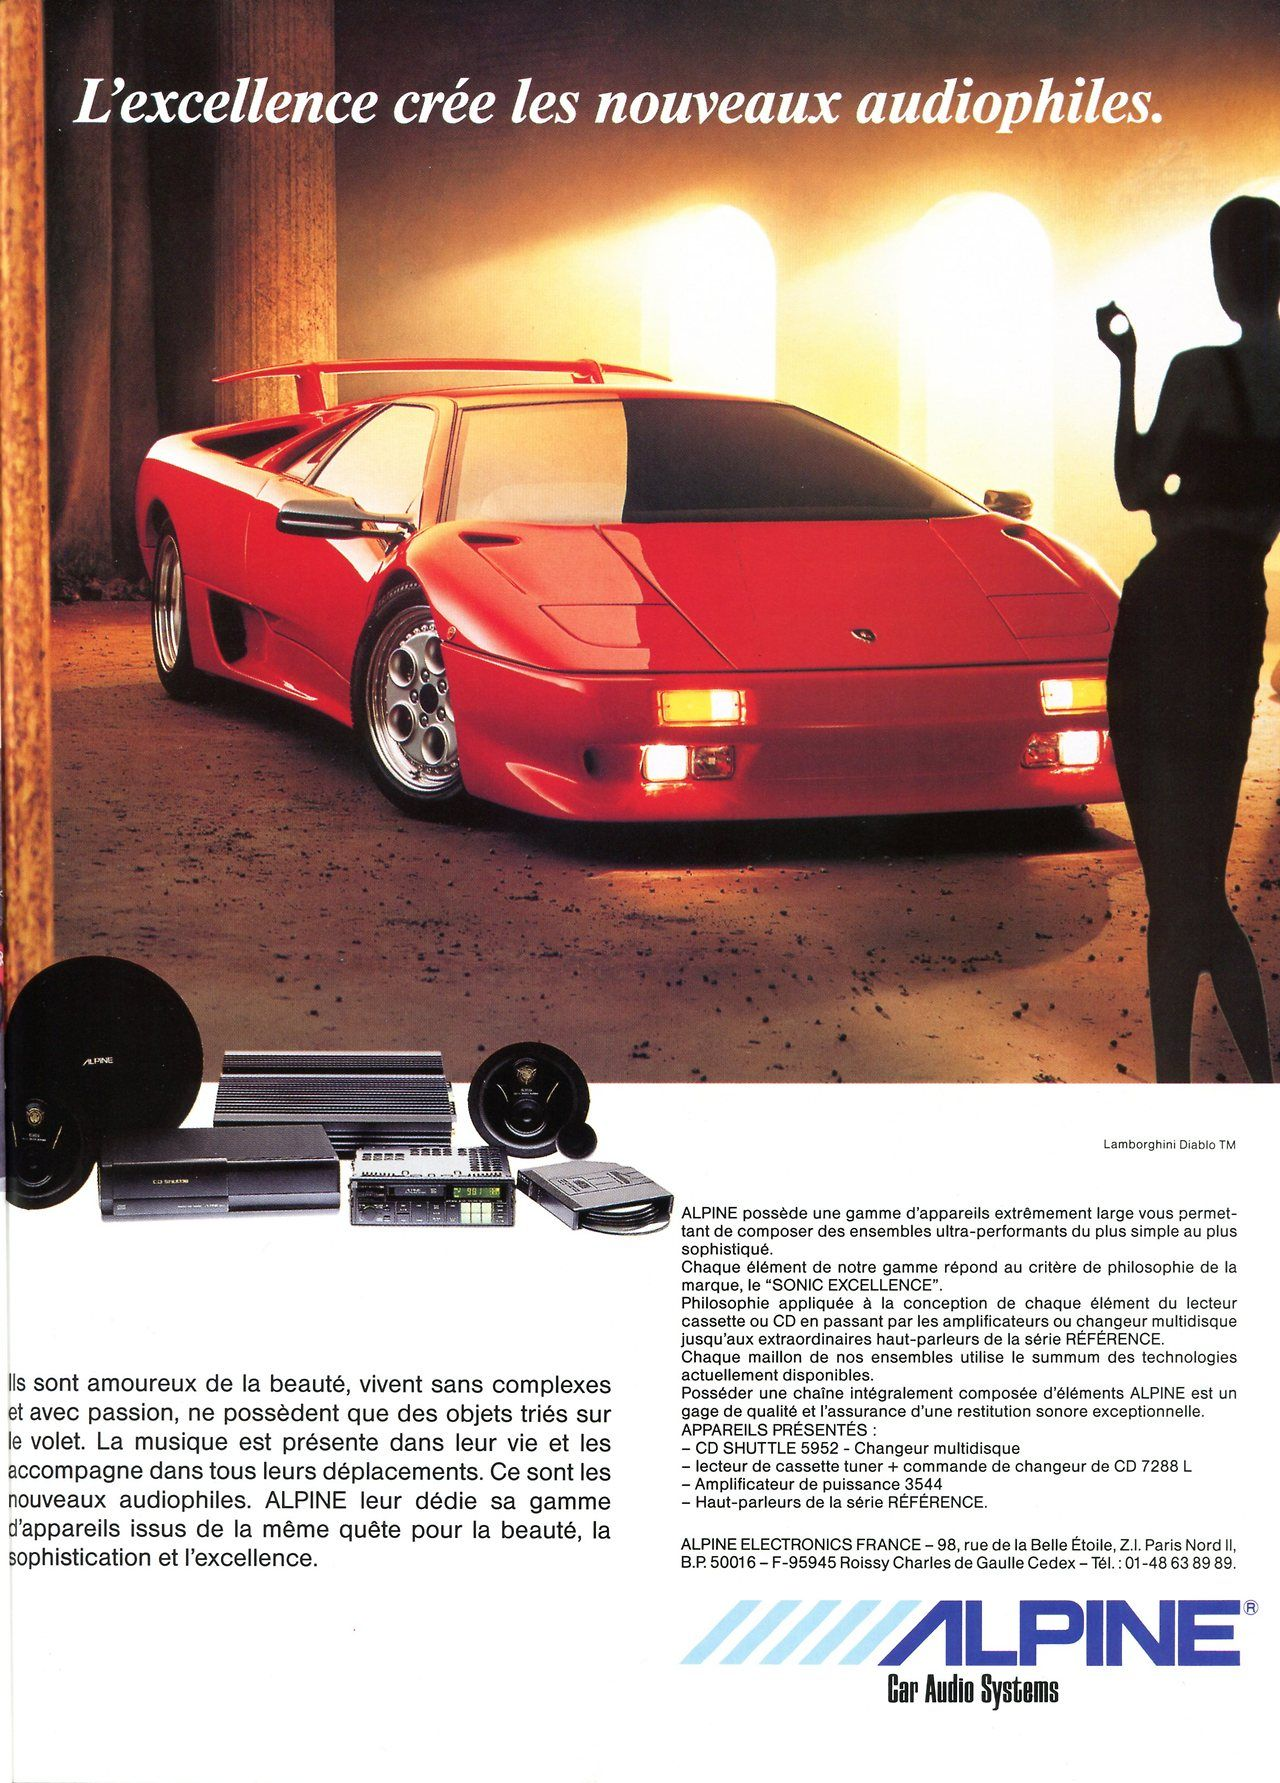 Publicite Alpine Car Audio Systems Lamborghini Diablo